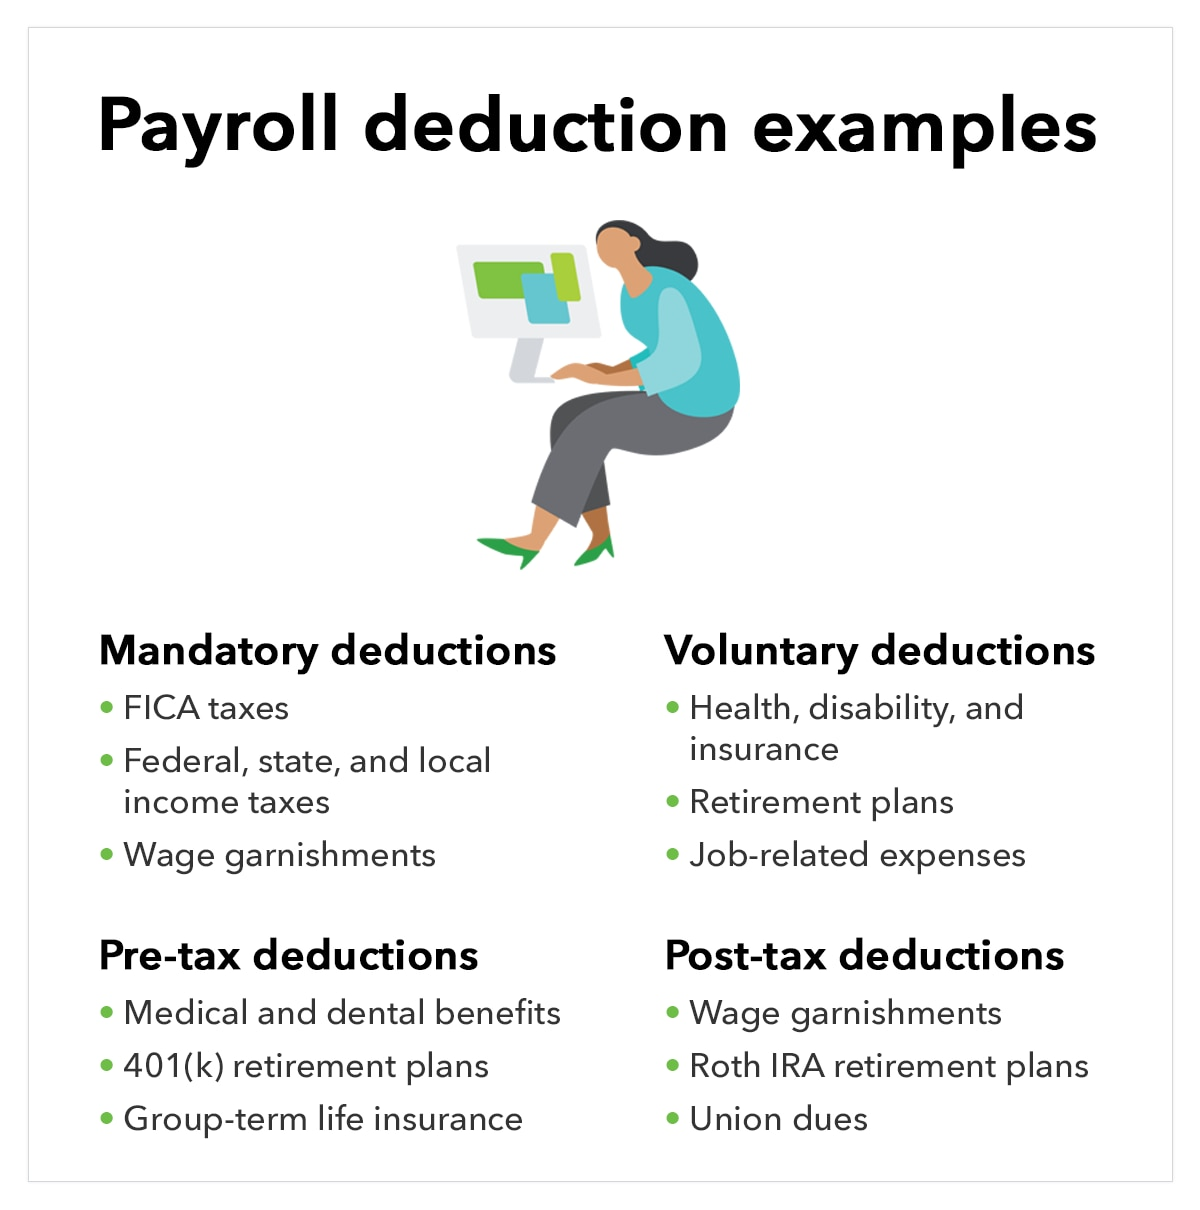 Payroll deductions examples